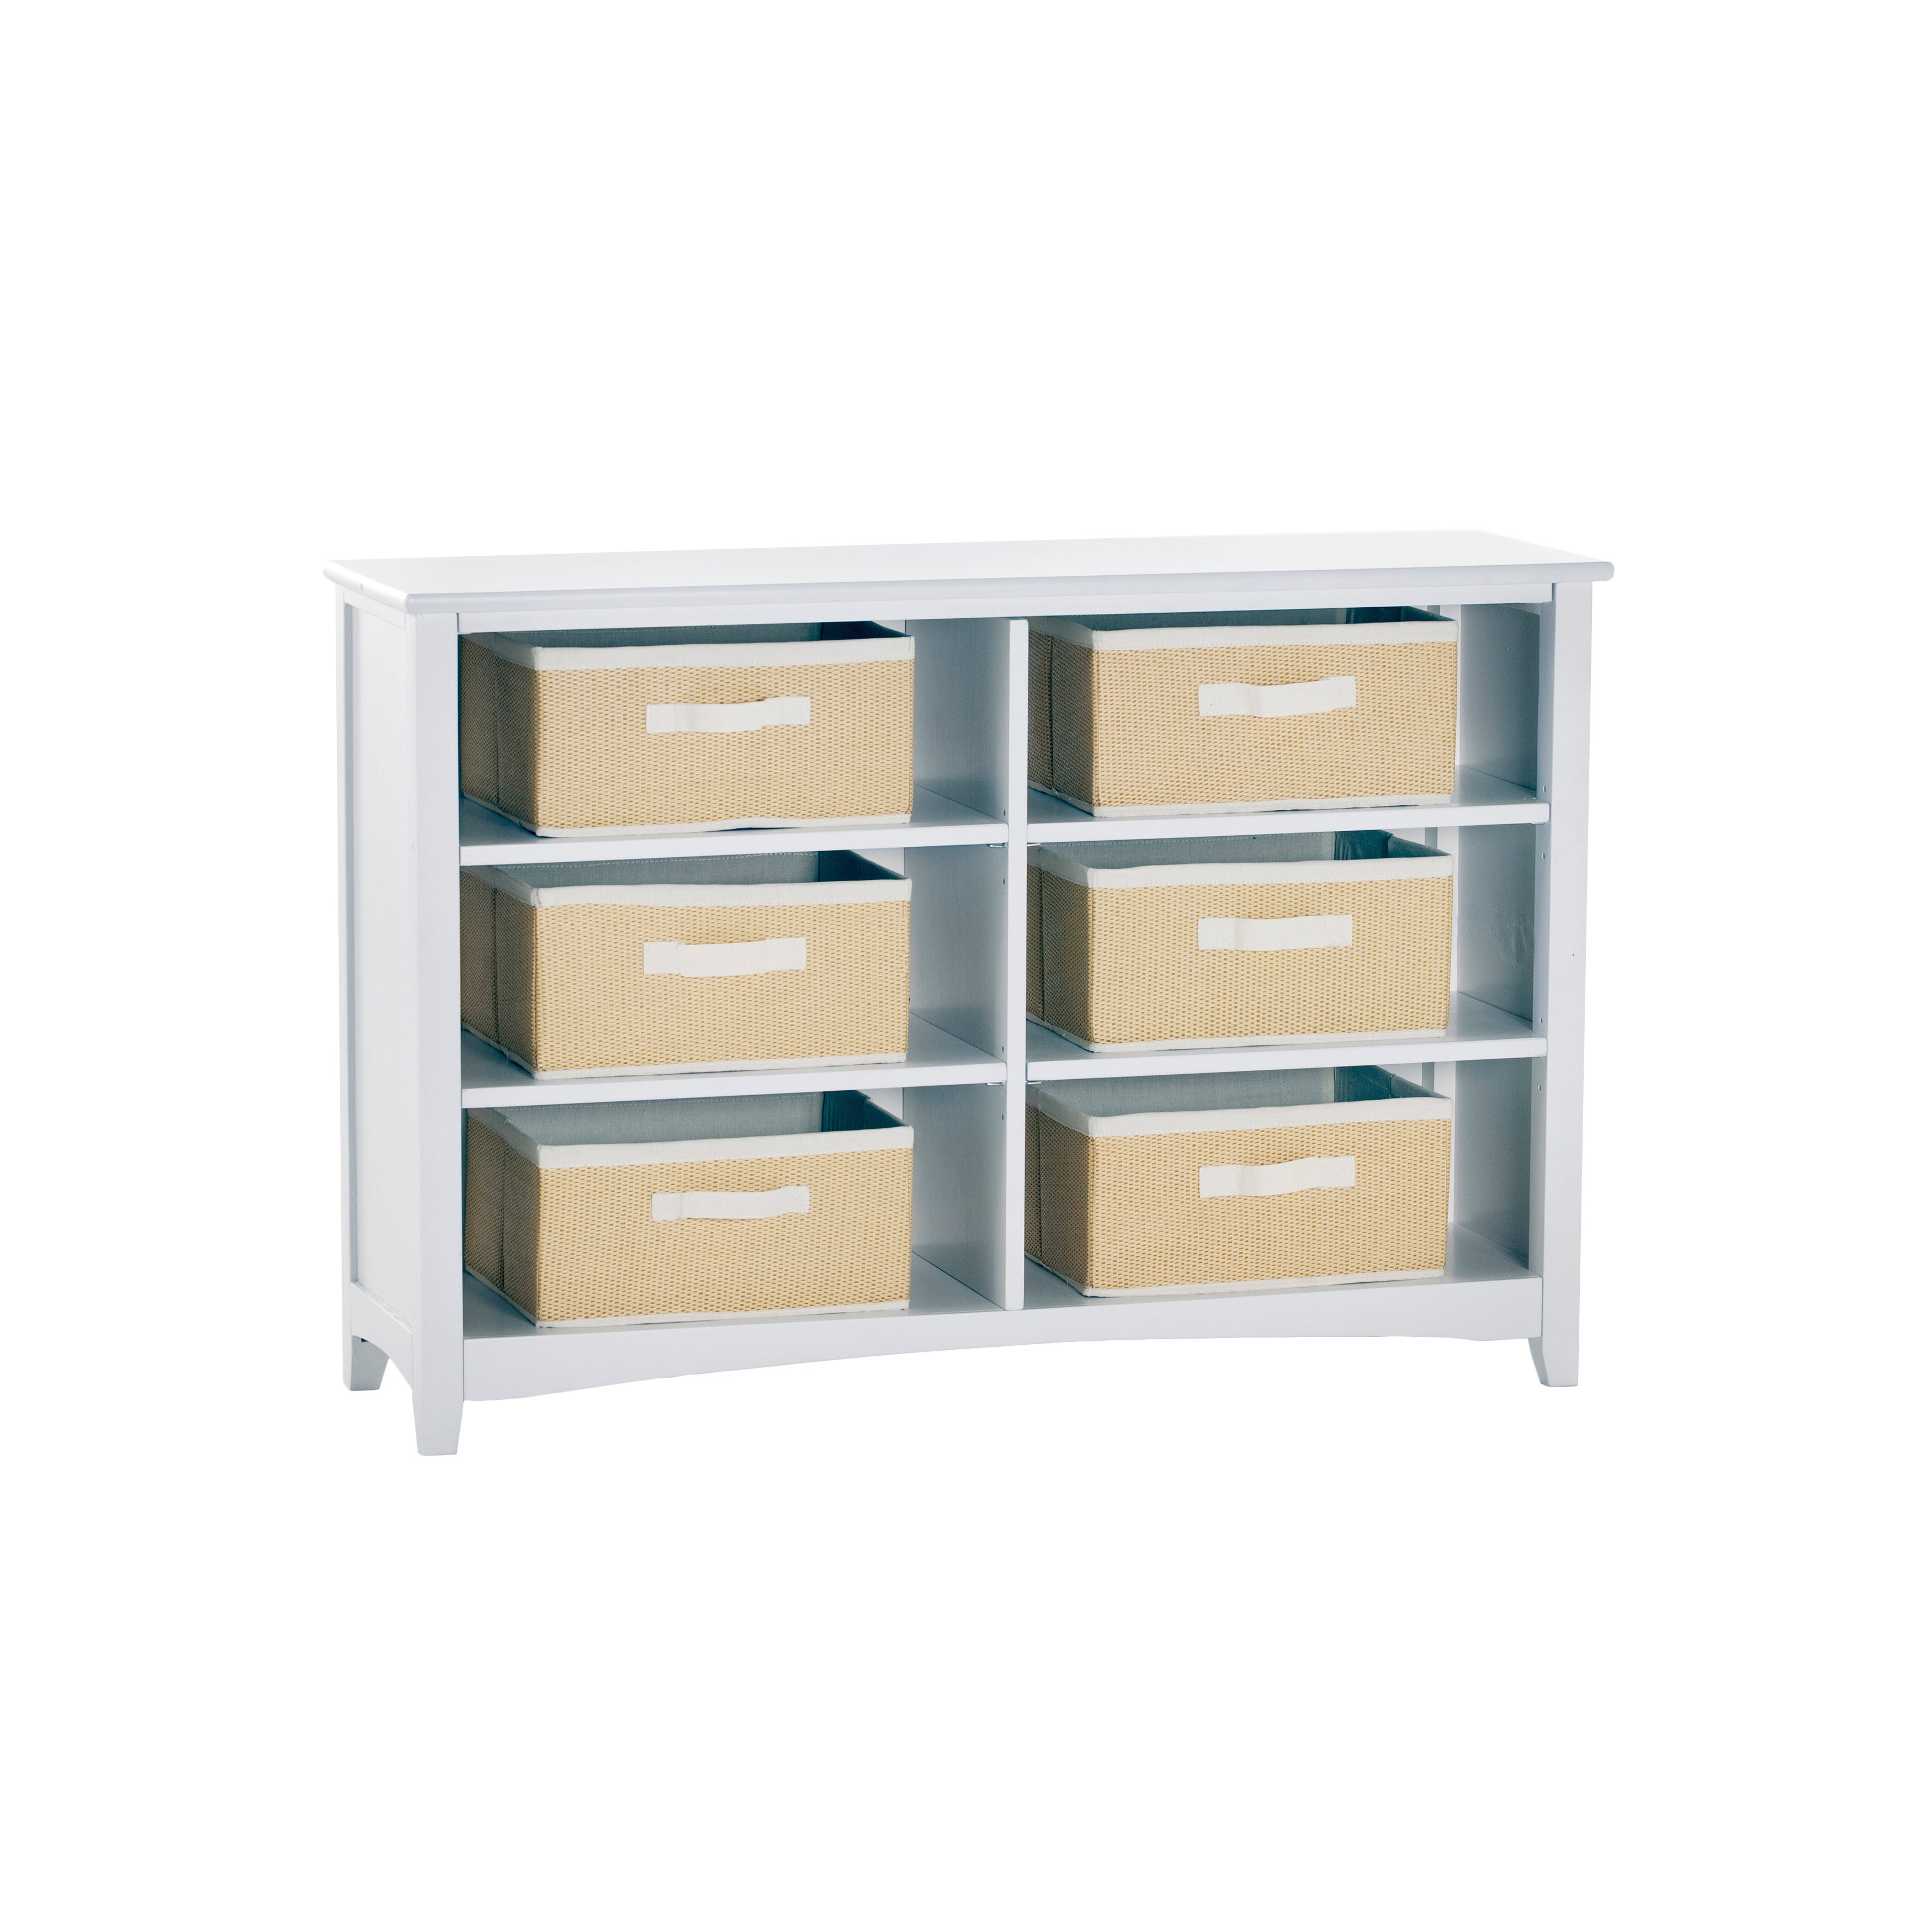 bookshelves brown horizontal modern bookcases lamp gucci bookshelf astounding books and bookcase with white cool